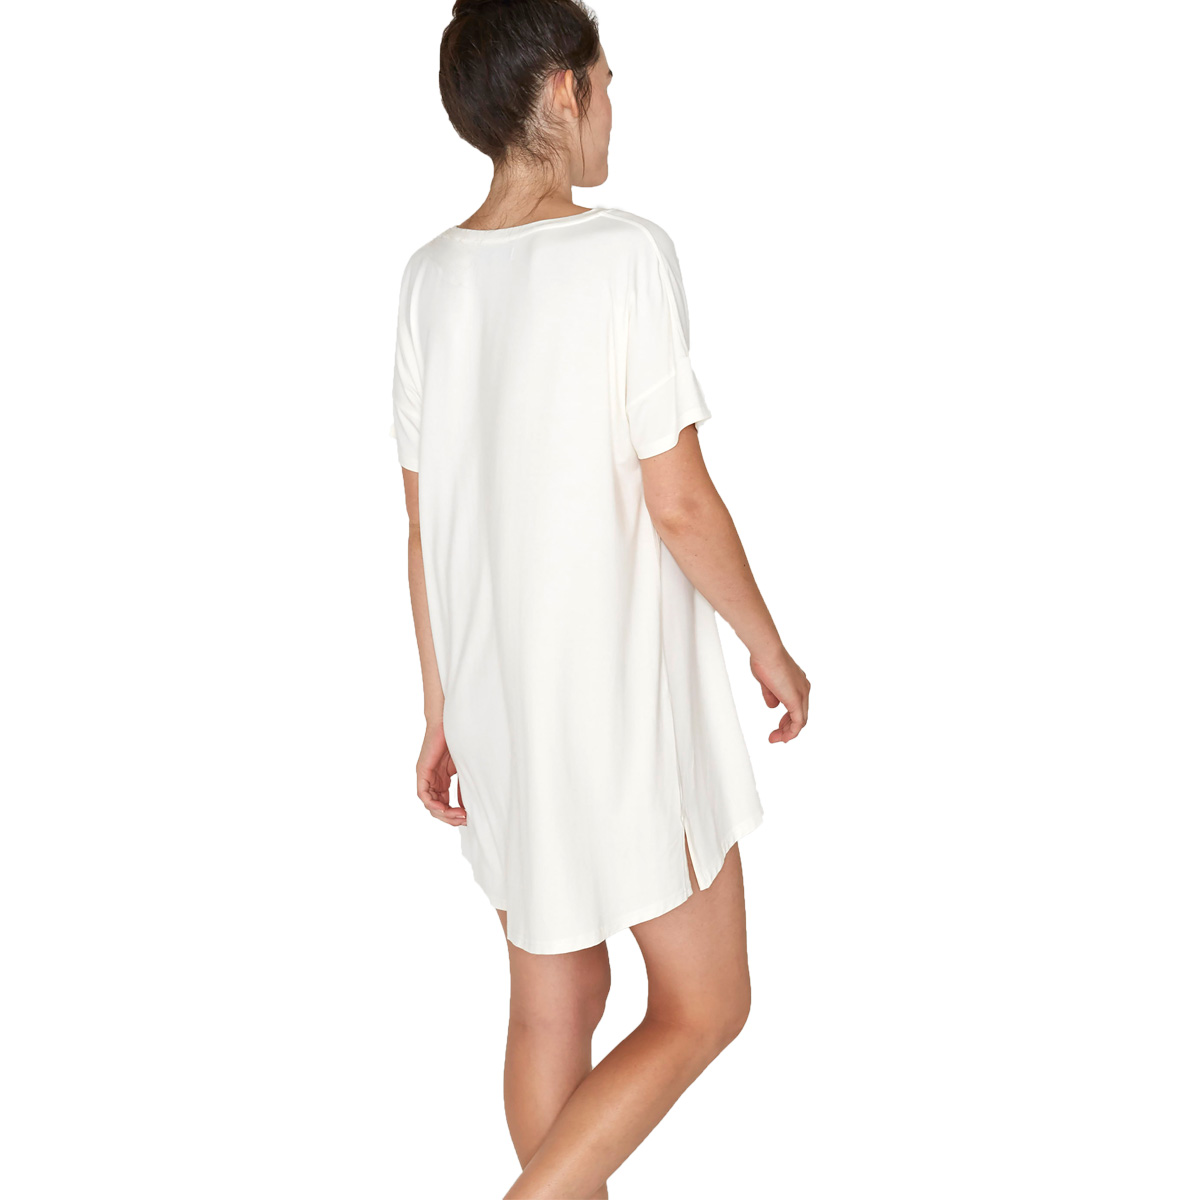 Recliner Sleep Dress